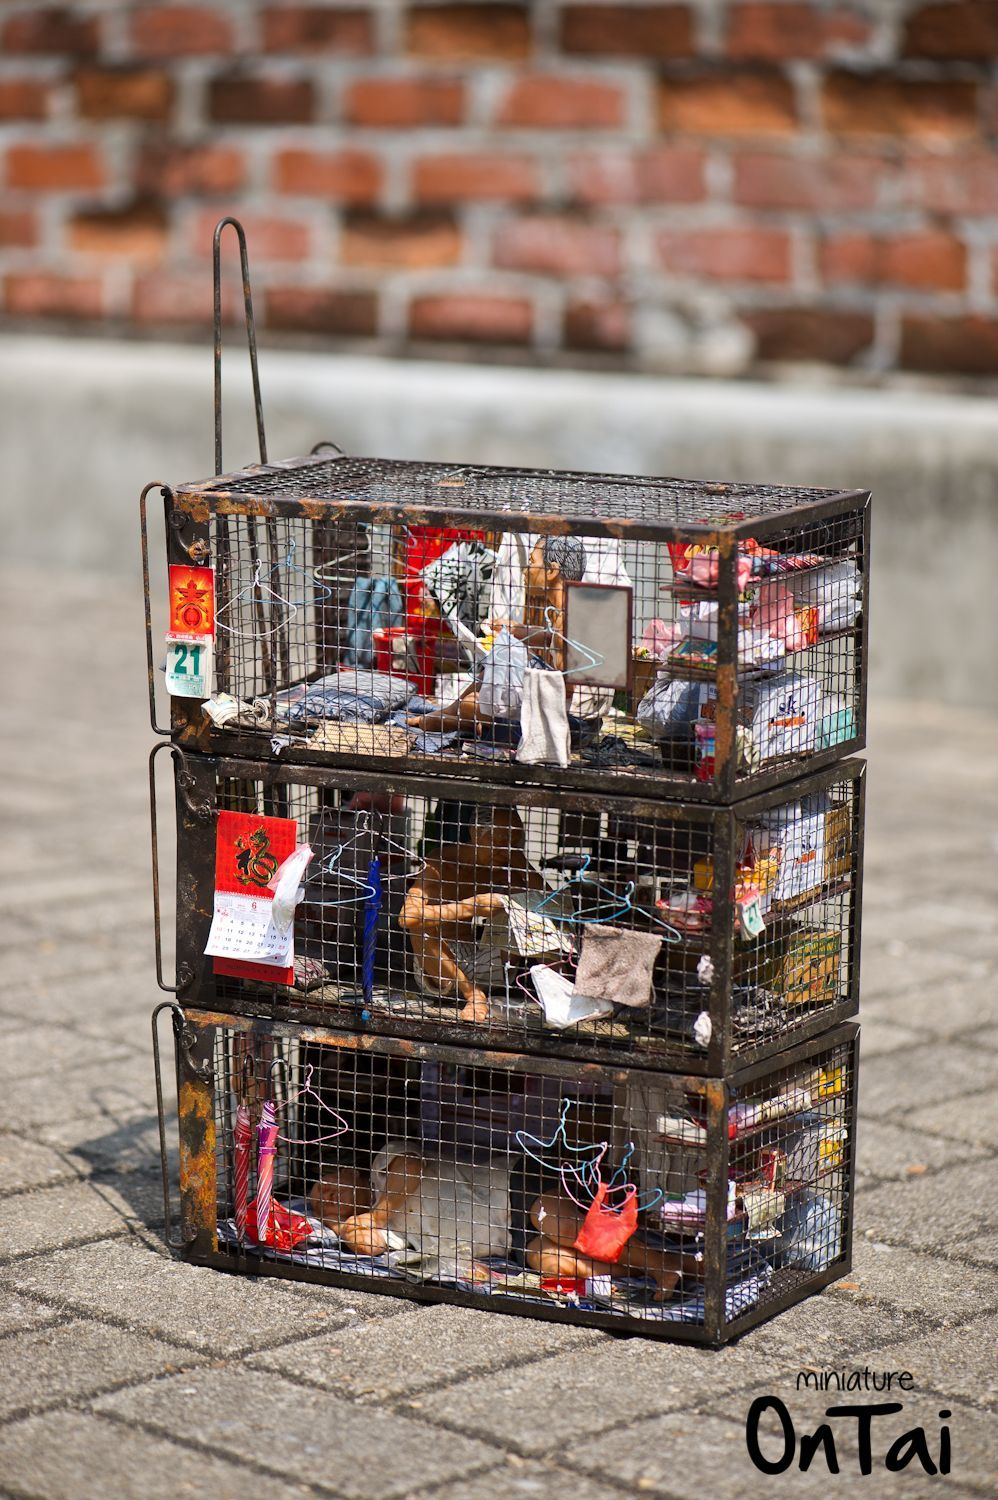 Cage Home Miniature Model By Ontai Tiny World Stop Motion Box